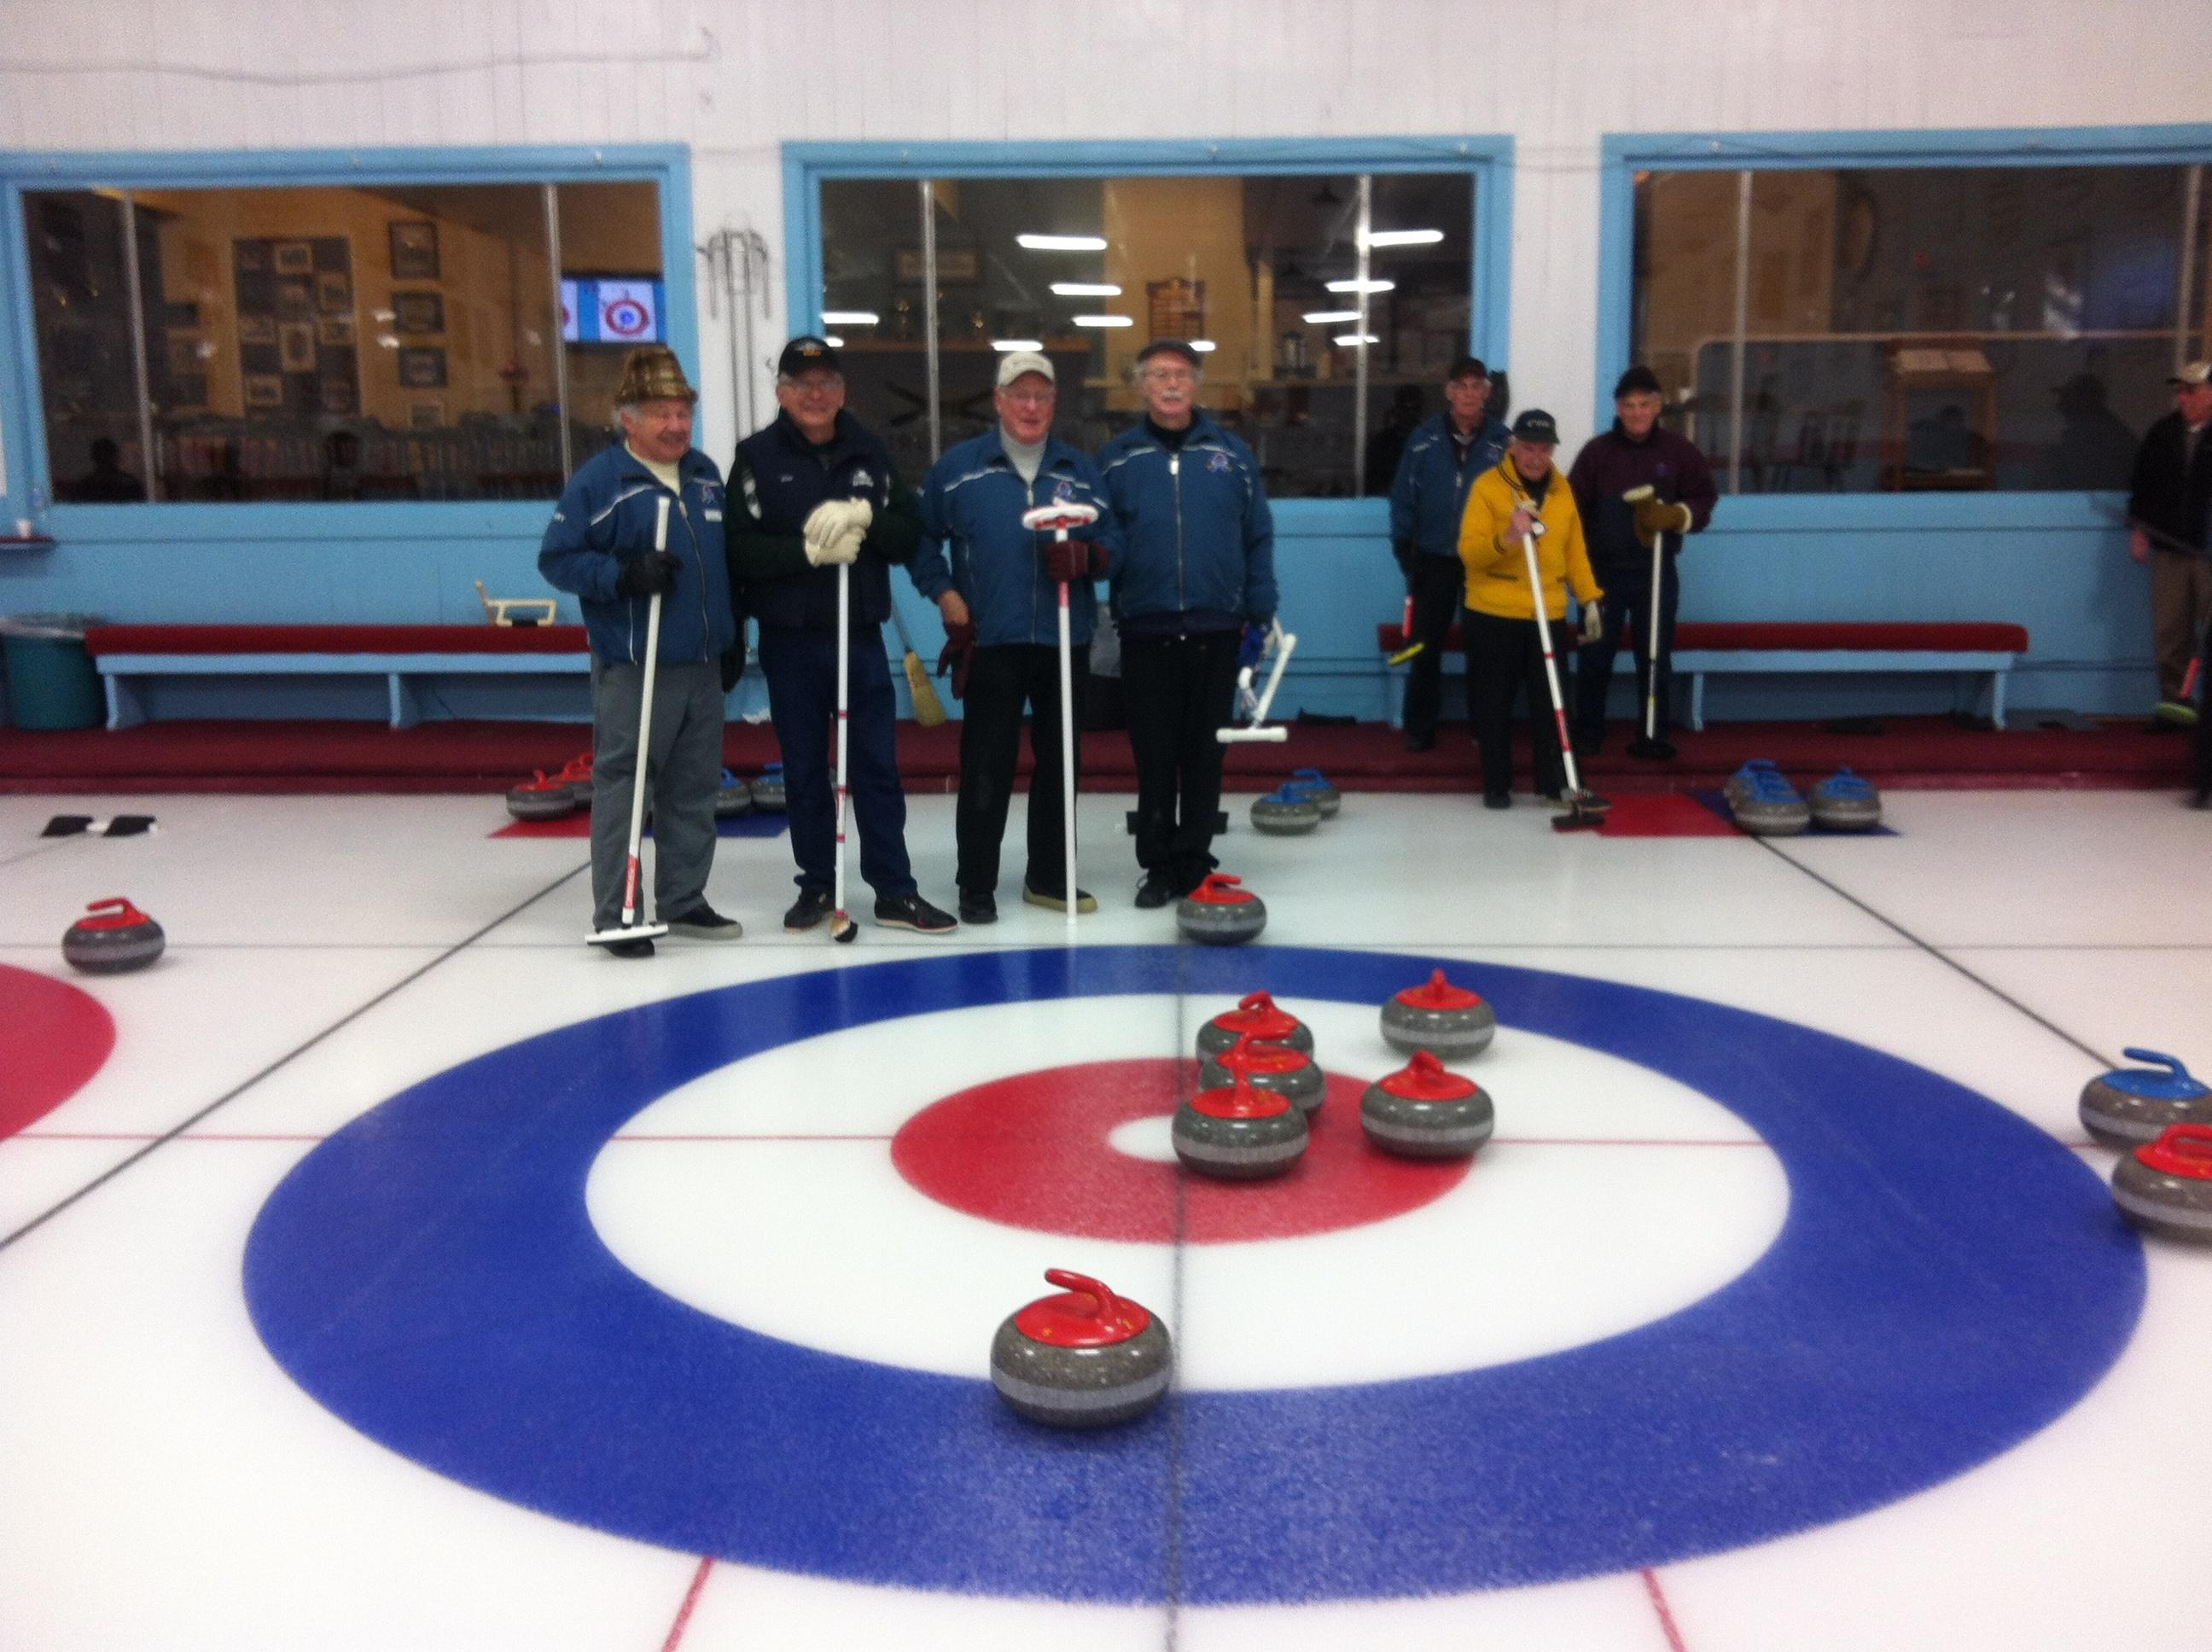 Senior's League 8 ender - Brian Faught, Gord Helm, Brian Shipley and Gary Bowser